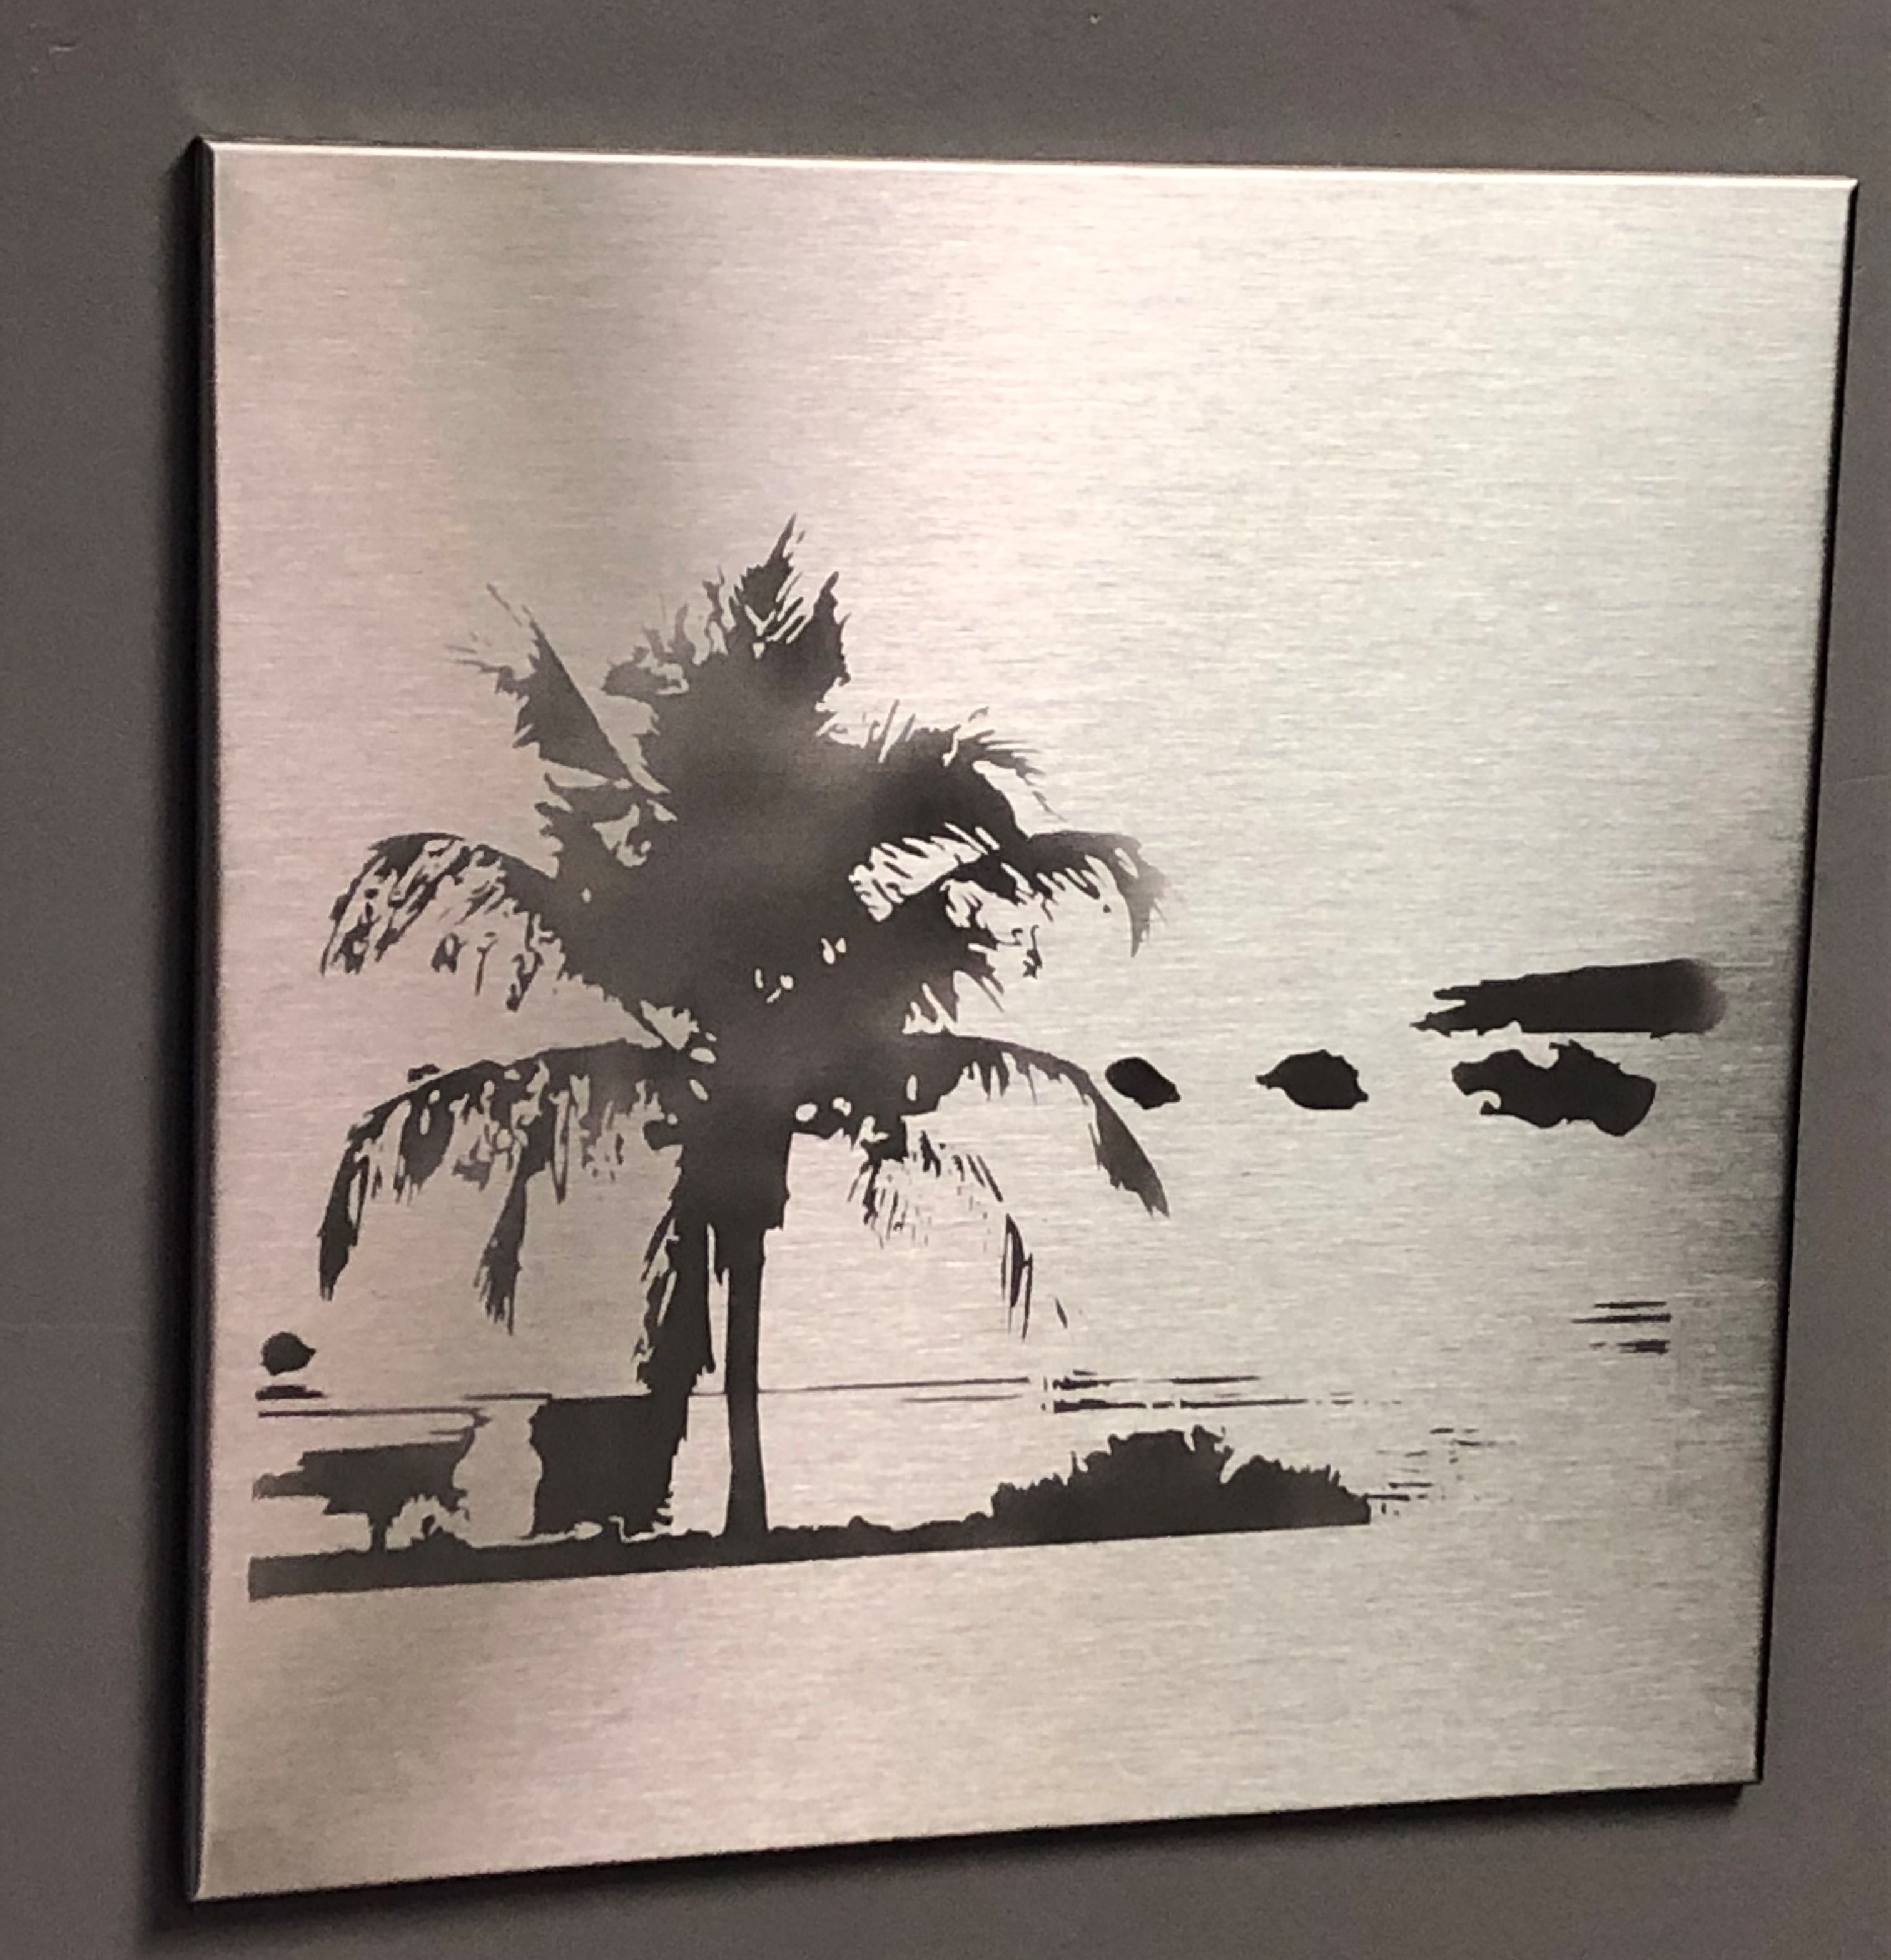 Stainless Steel Tile Art